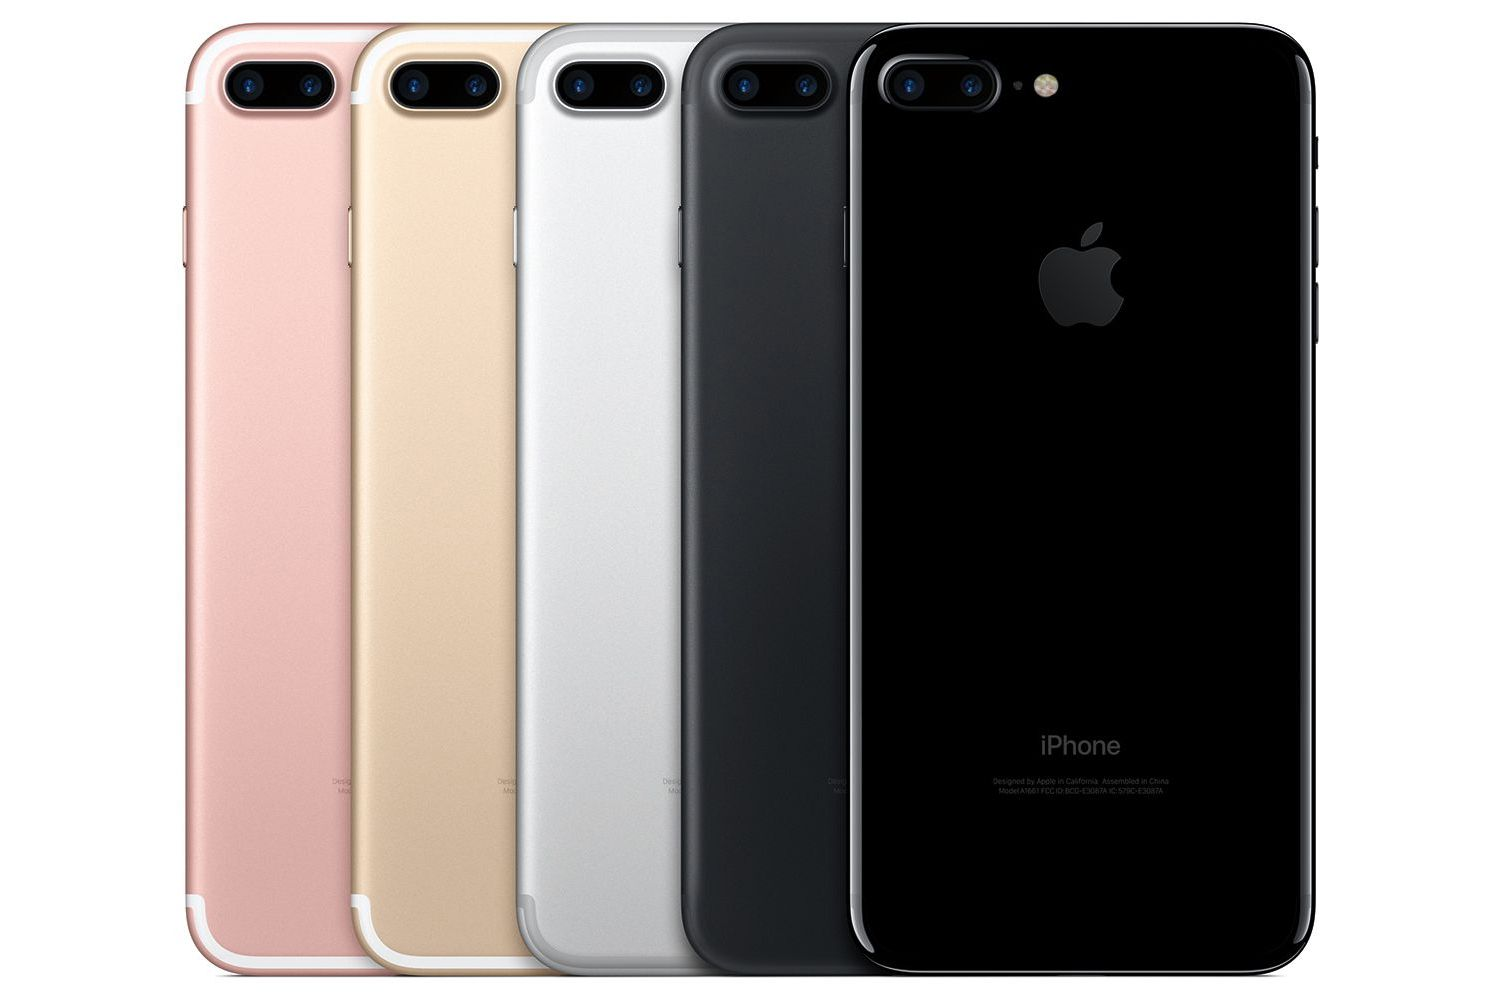 iPhone 7 color options